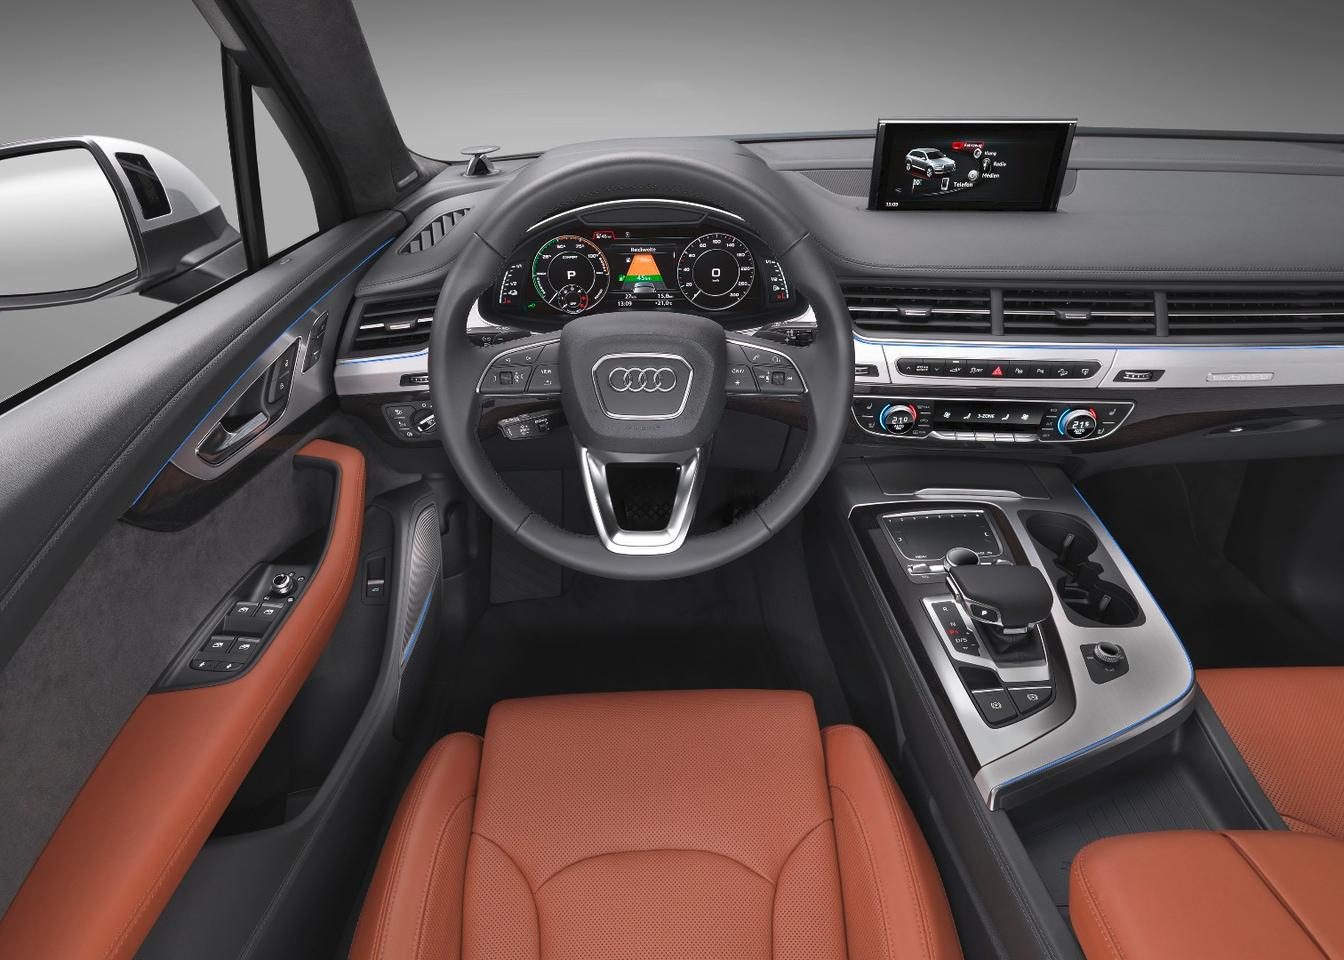 Inside, the 2017 Audi Q7 is well-outfitted with good materials quality and an elegant design